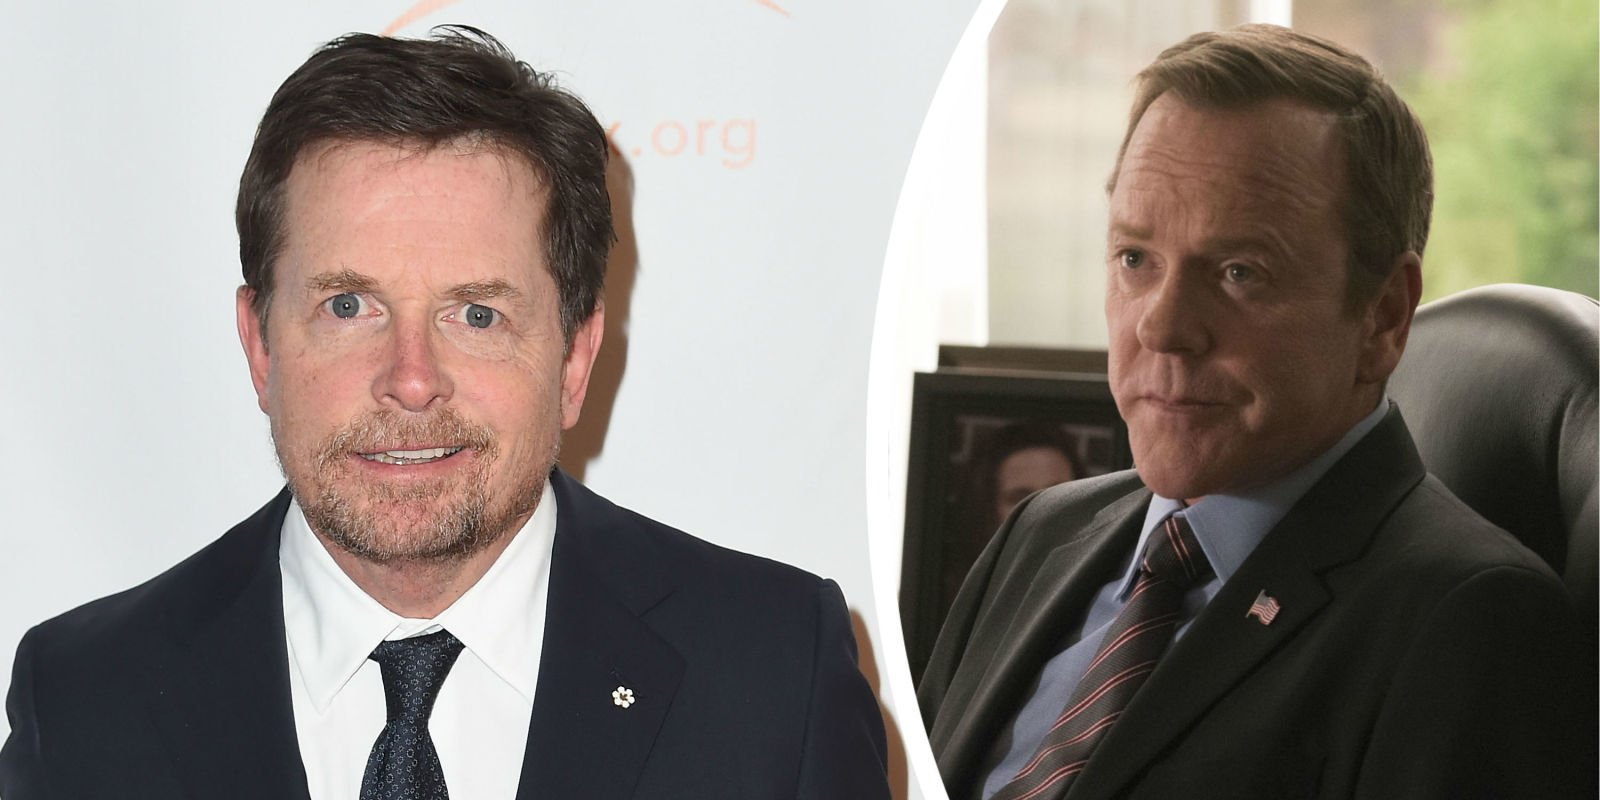 Michael J Fox will face off with Kiefer Sutherland in new episodes of Designated Survivor